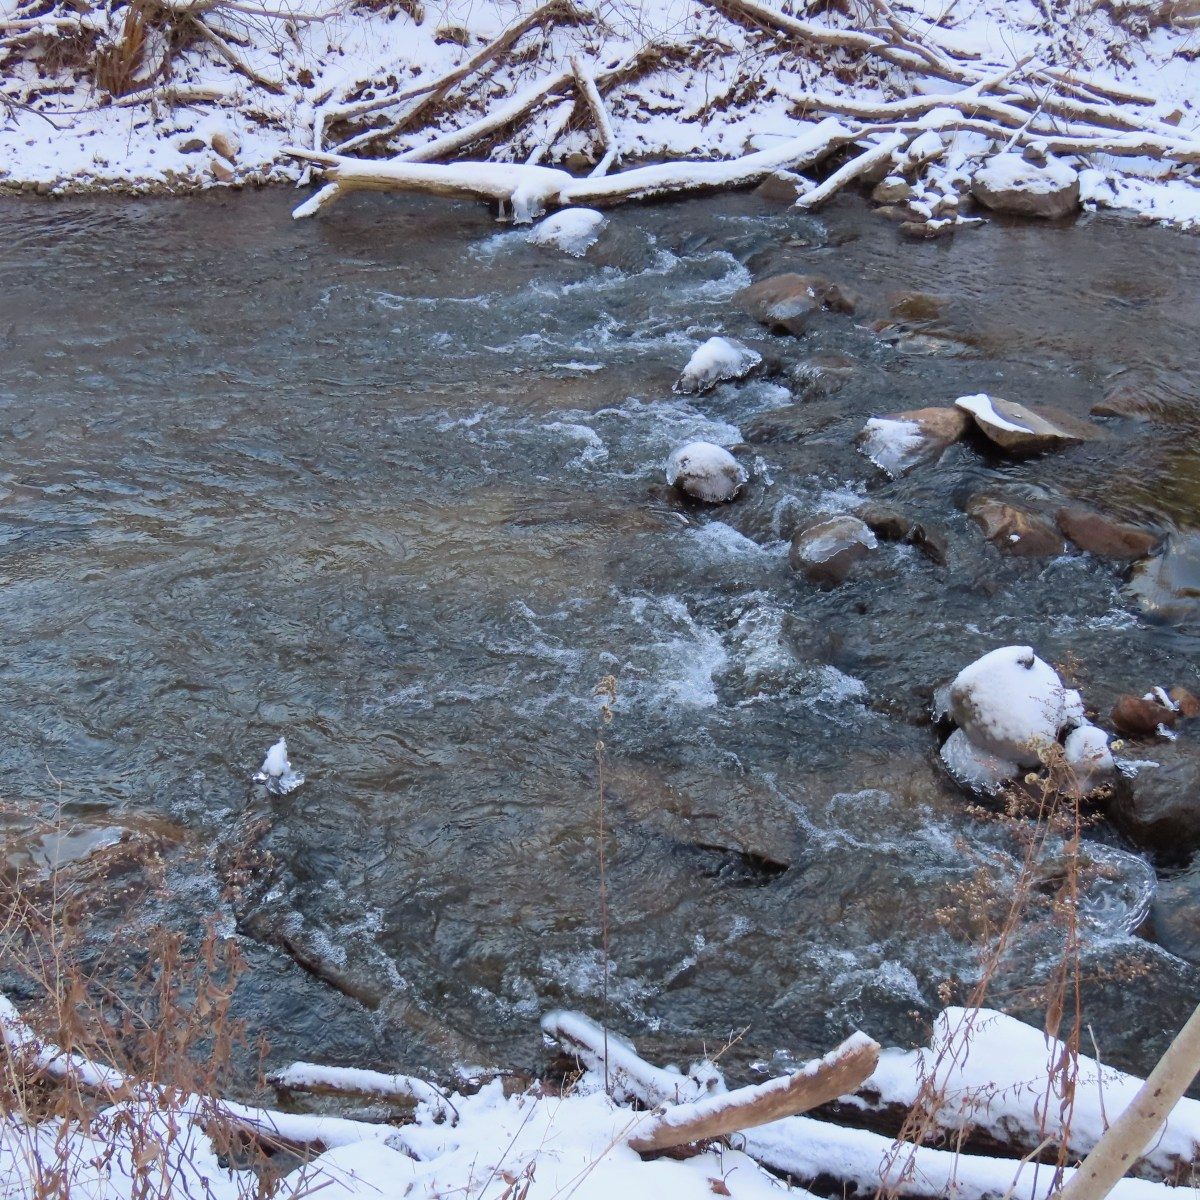 Water flows in a creek whose rocks and banks are covered in snow